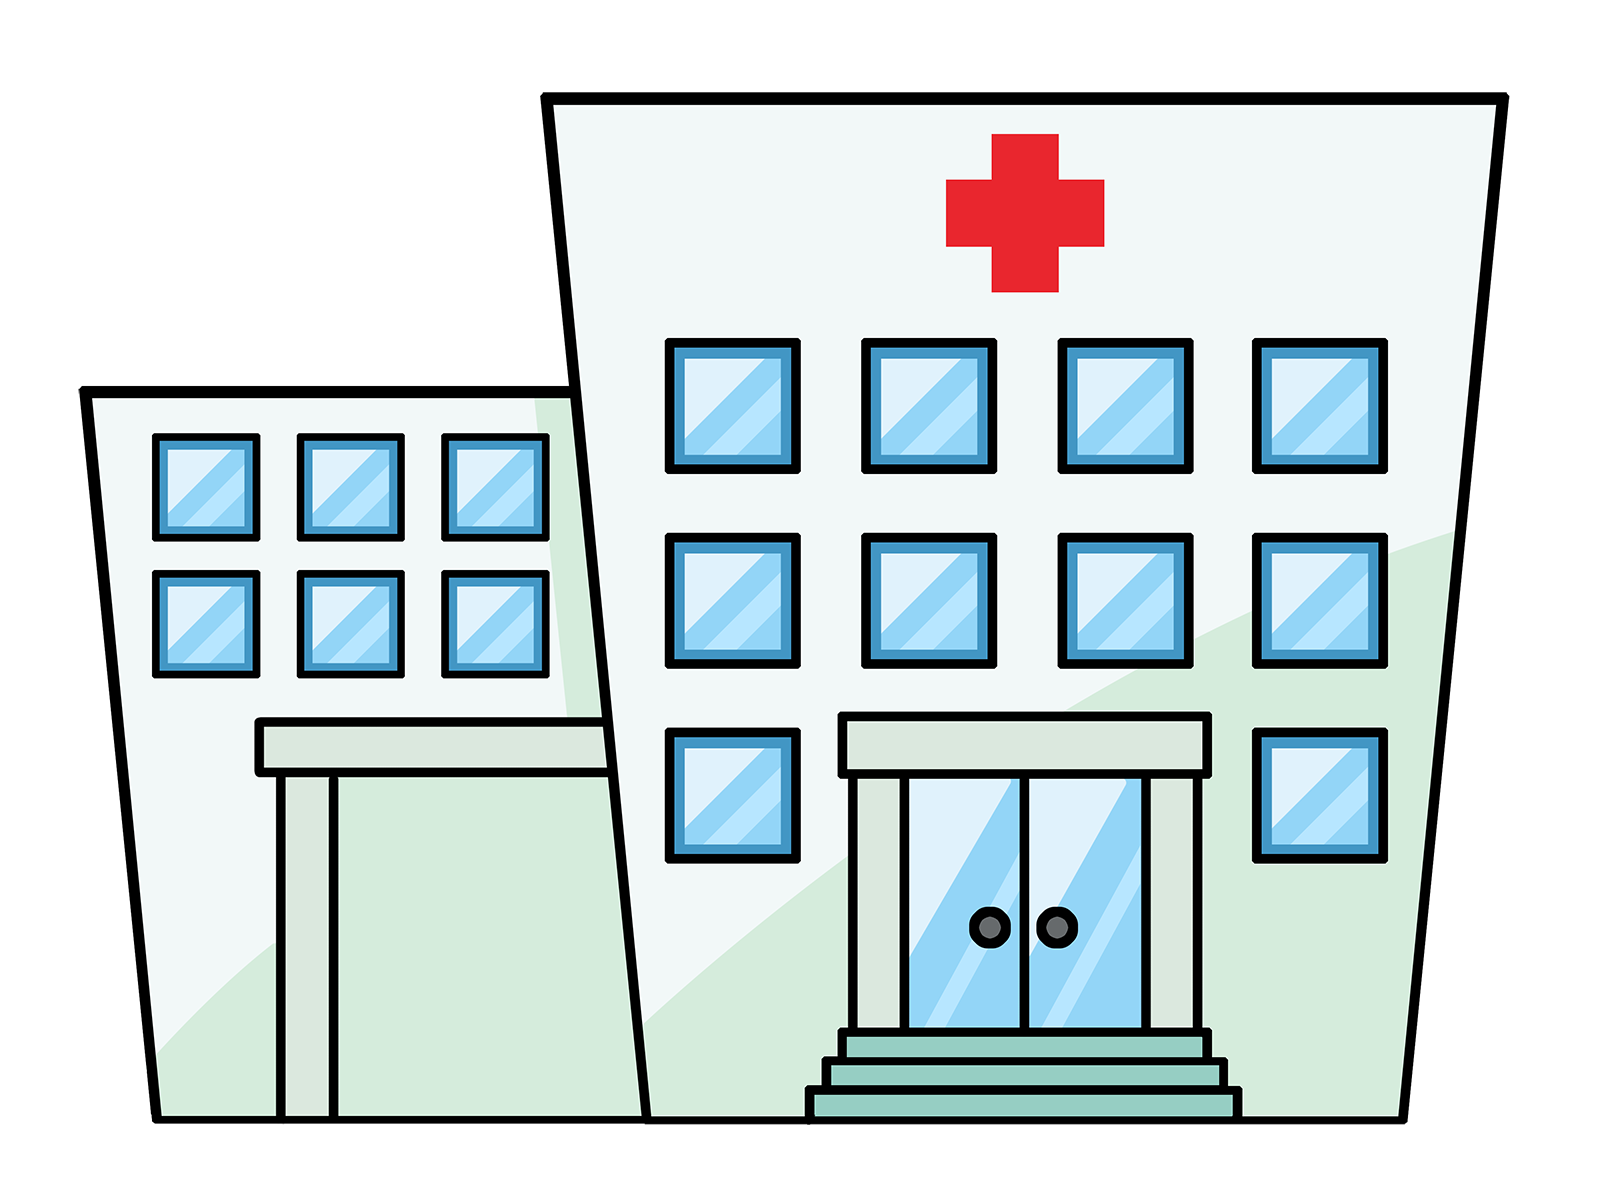 Patient clipart hospital admission. Cartoon